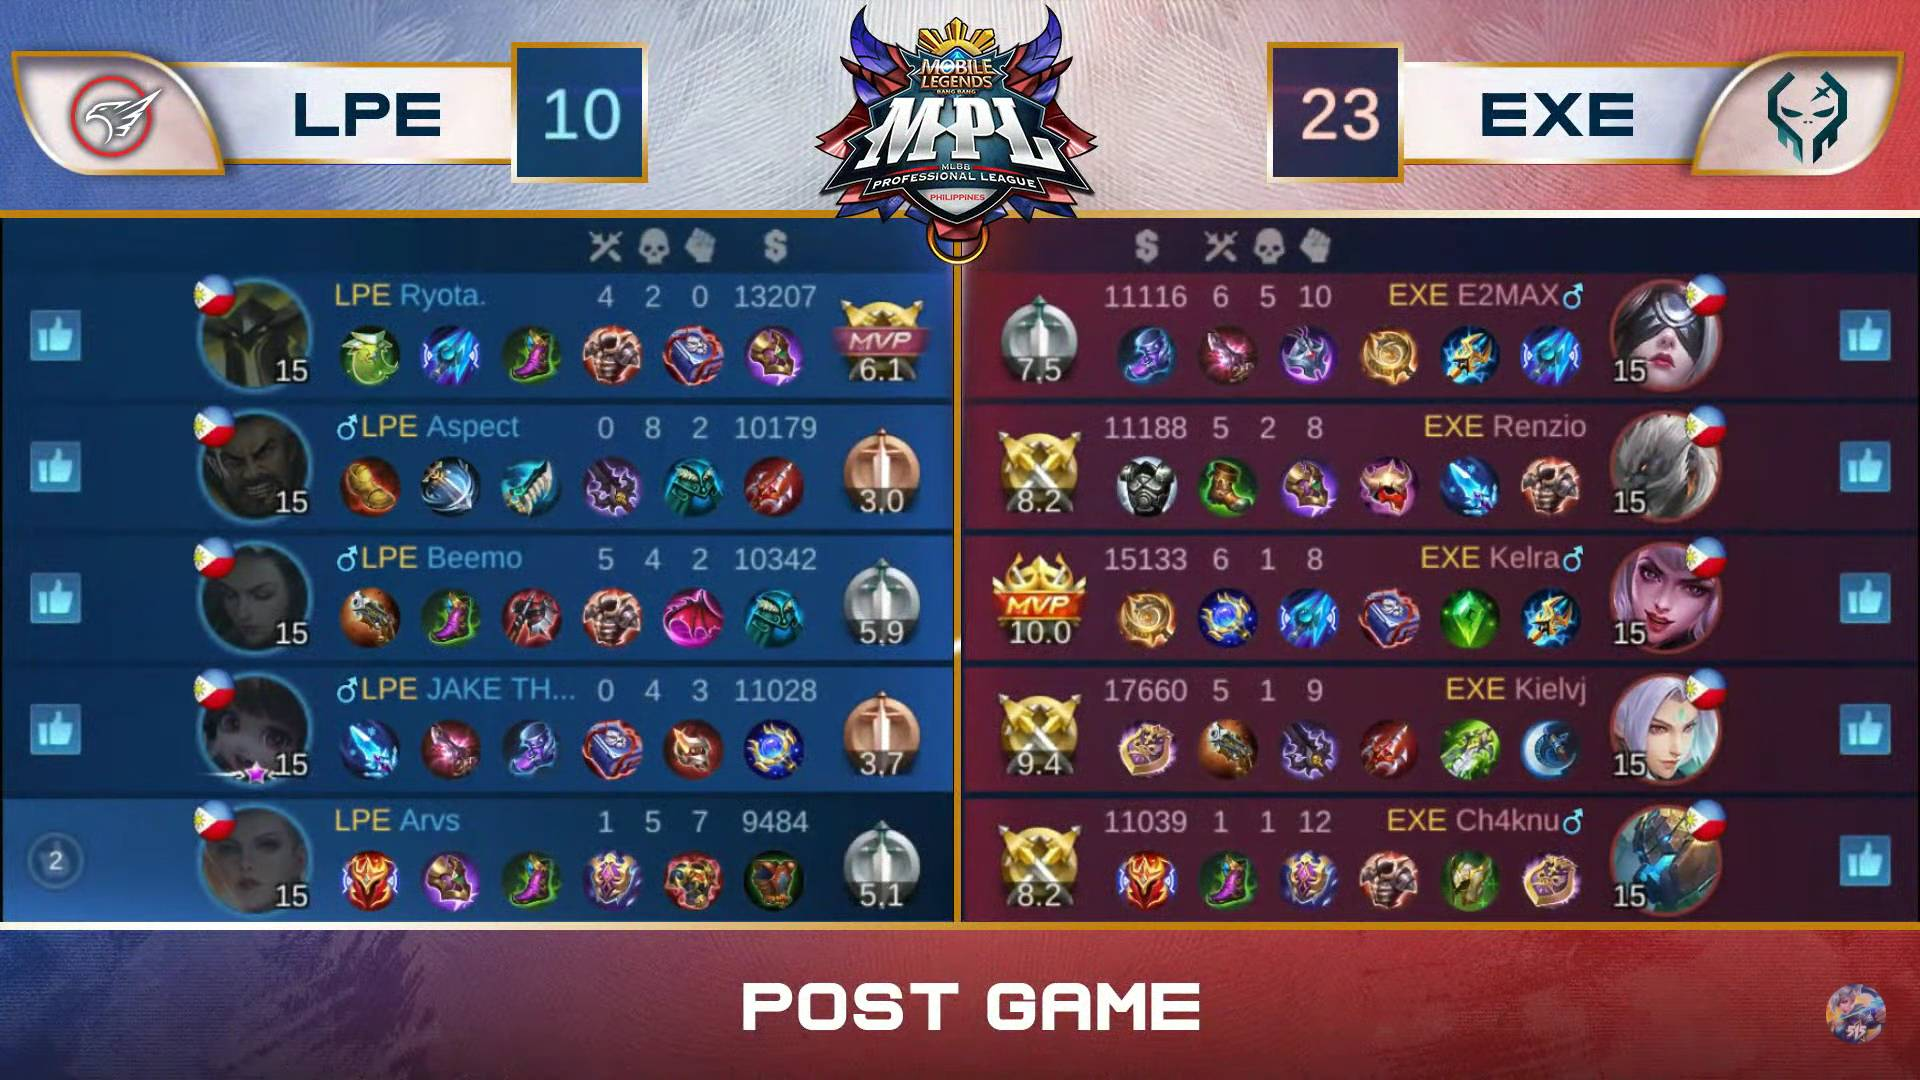 MPL-PH-7-Execration-def-Playbook-Game-1 Kielvj survives early Playbook pressure as Execration rises to top of MPL PH B ESports Mobile Legends MPL-PH News  - philippine sports news